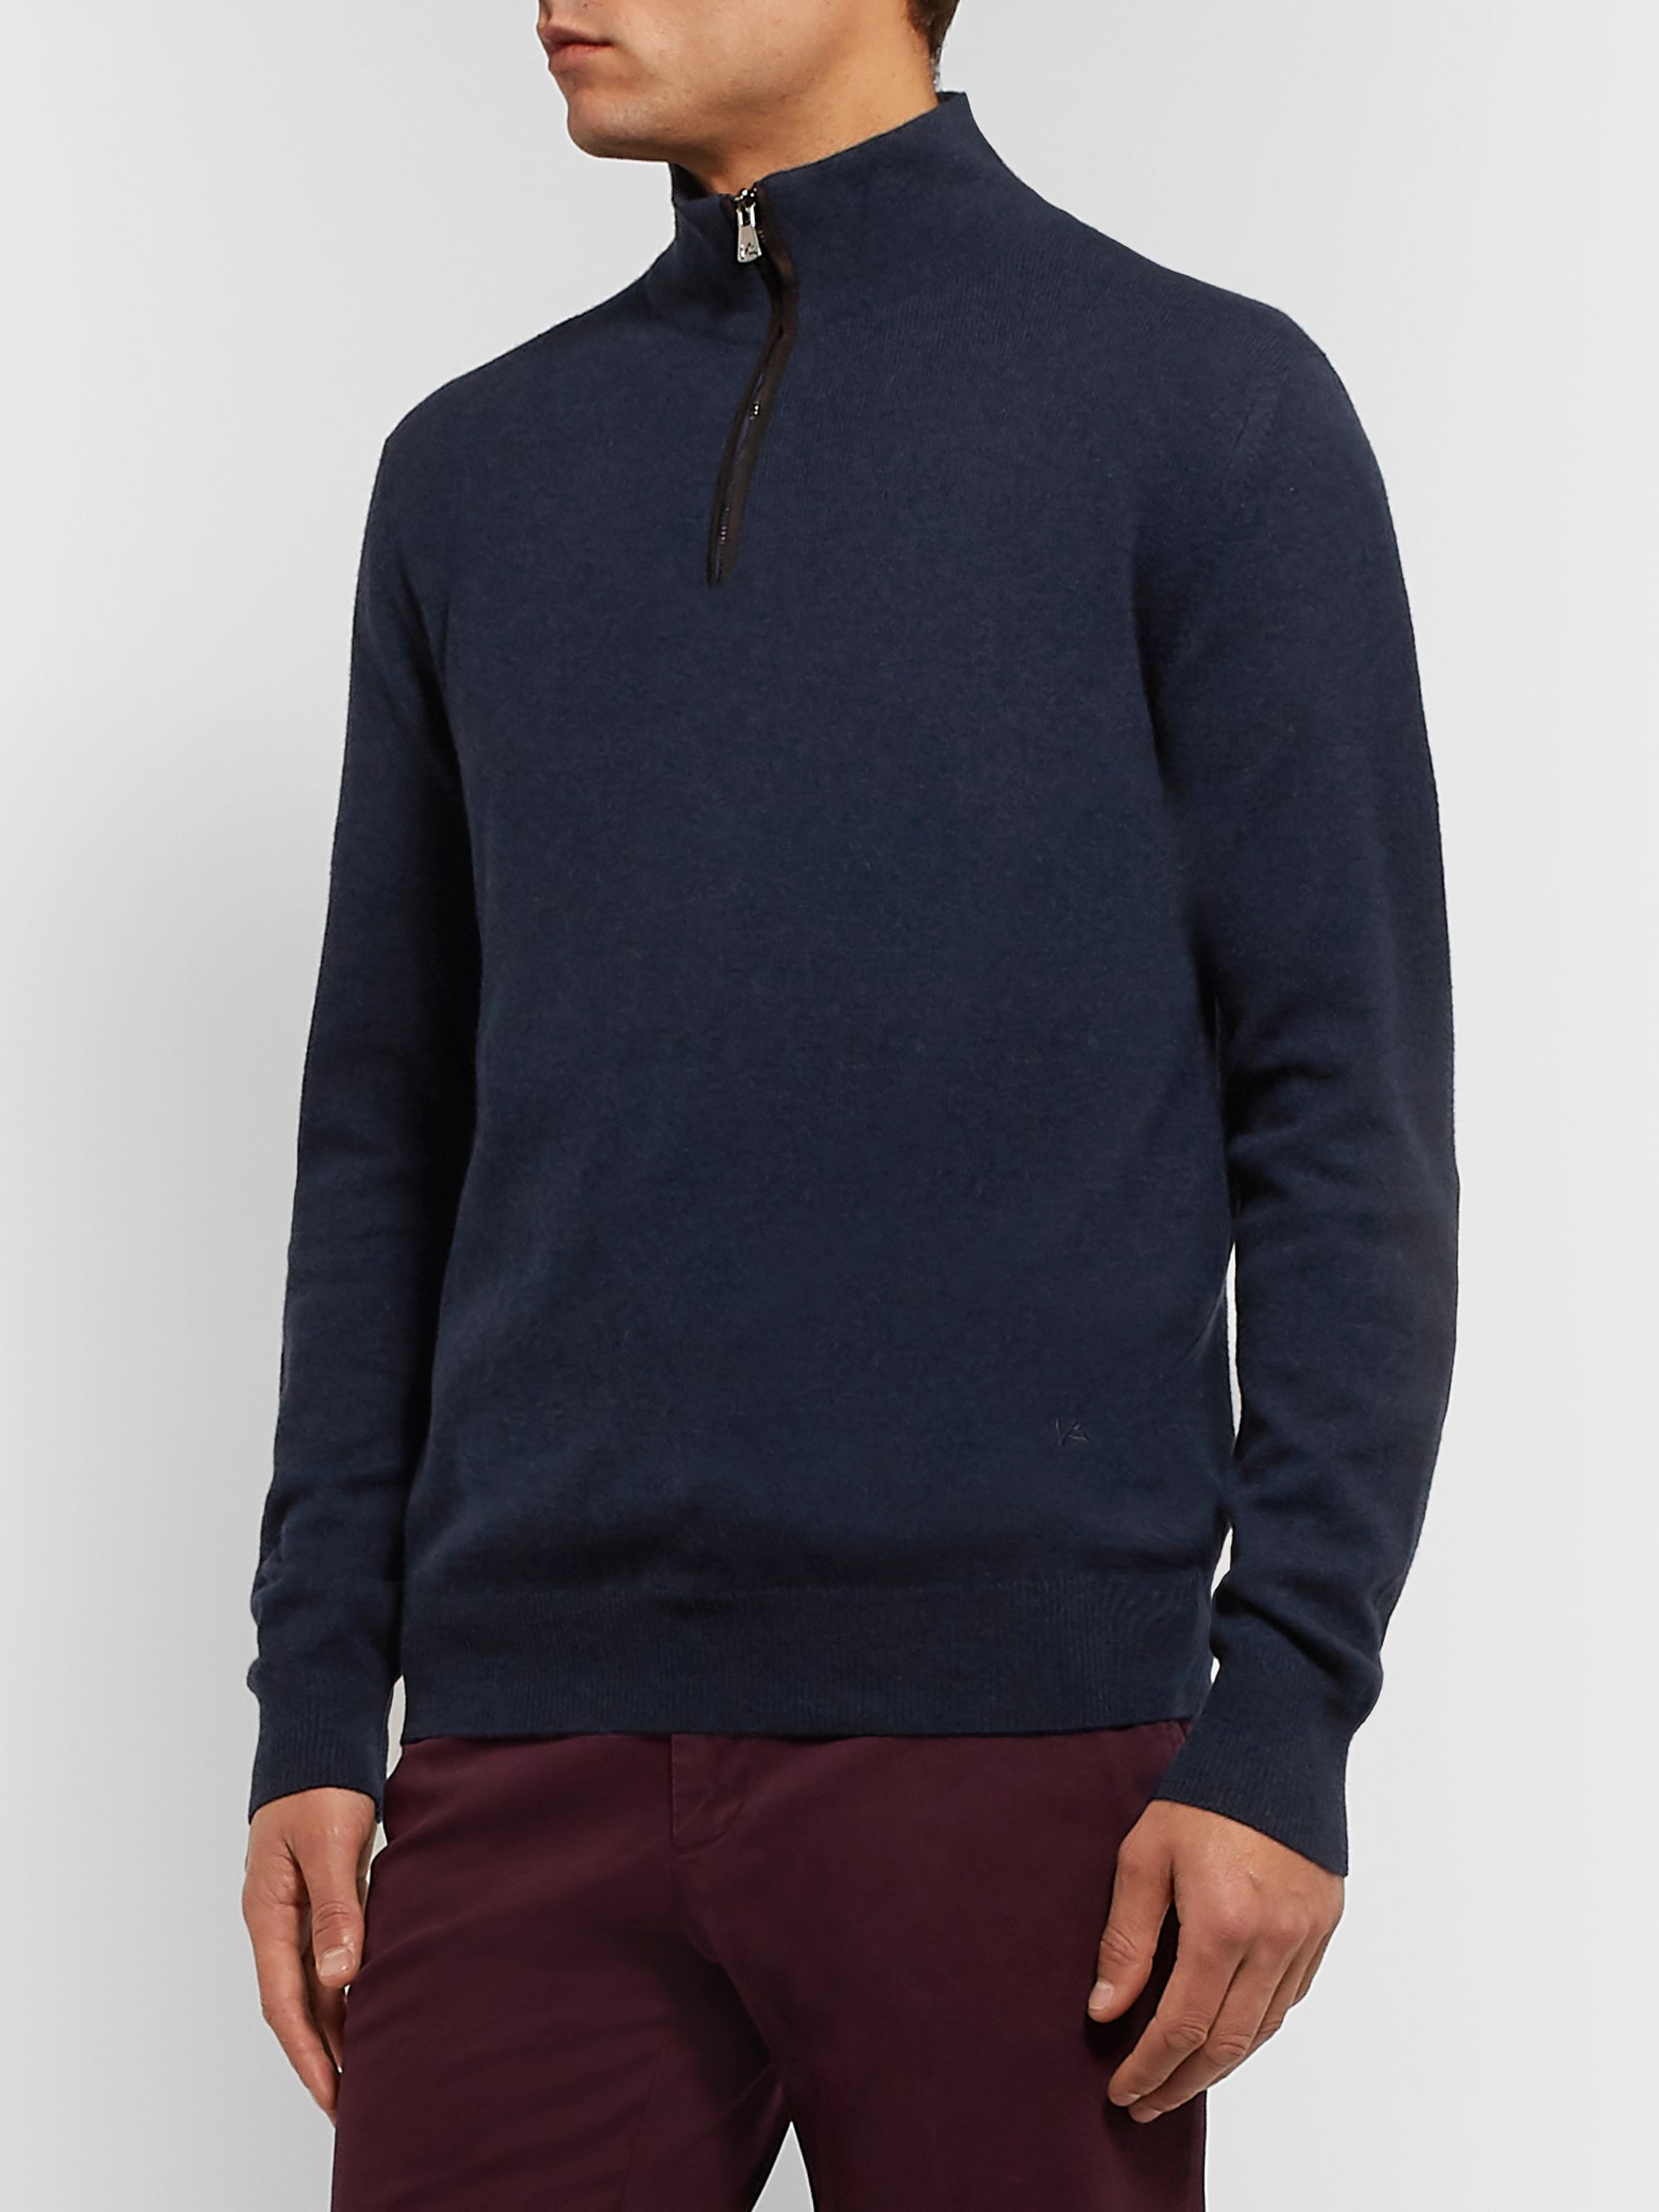 Isaia Slim-Fit Suede Elbow-Patch Cashmere Half-Zip Sweater